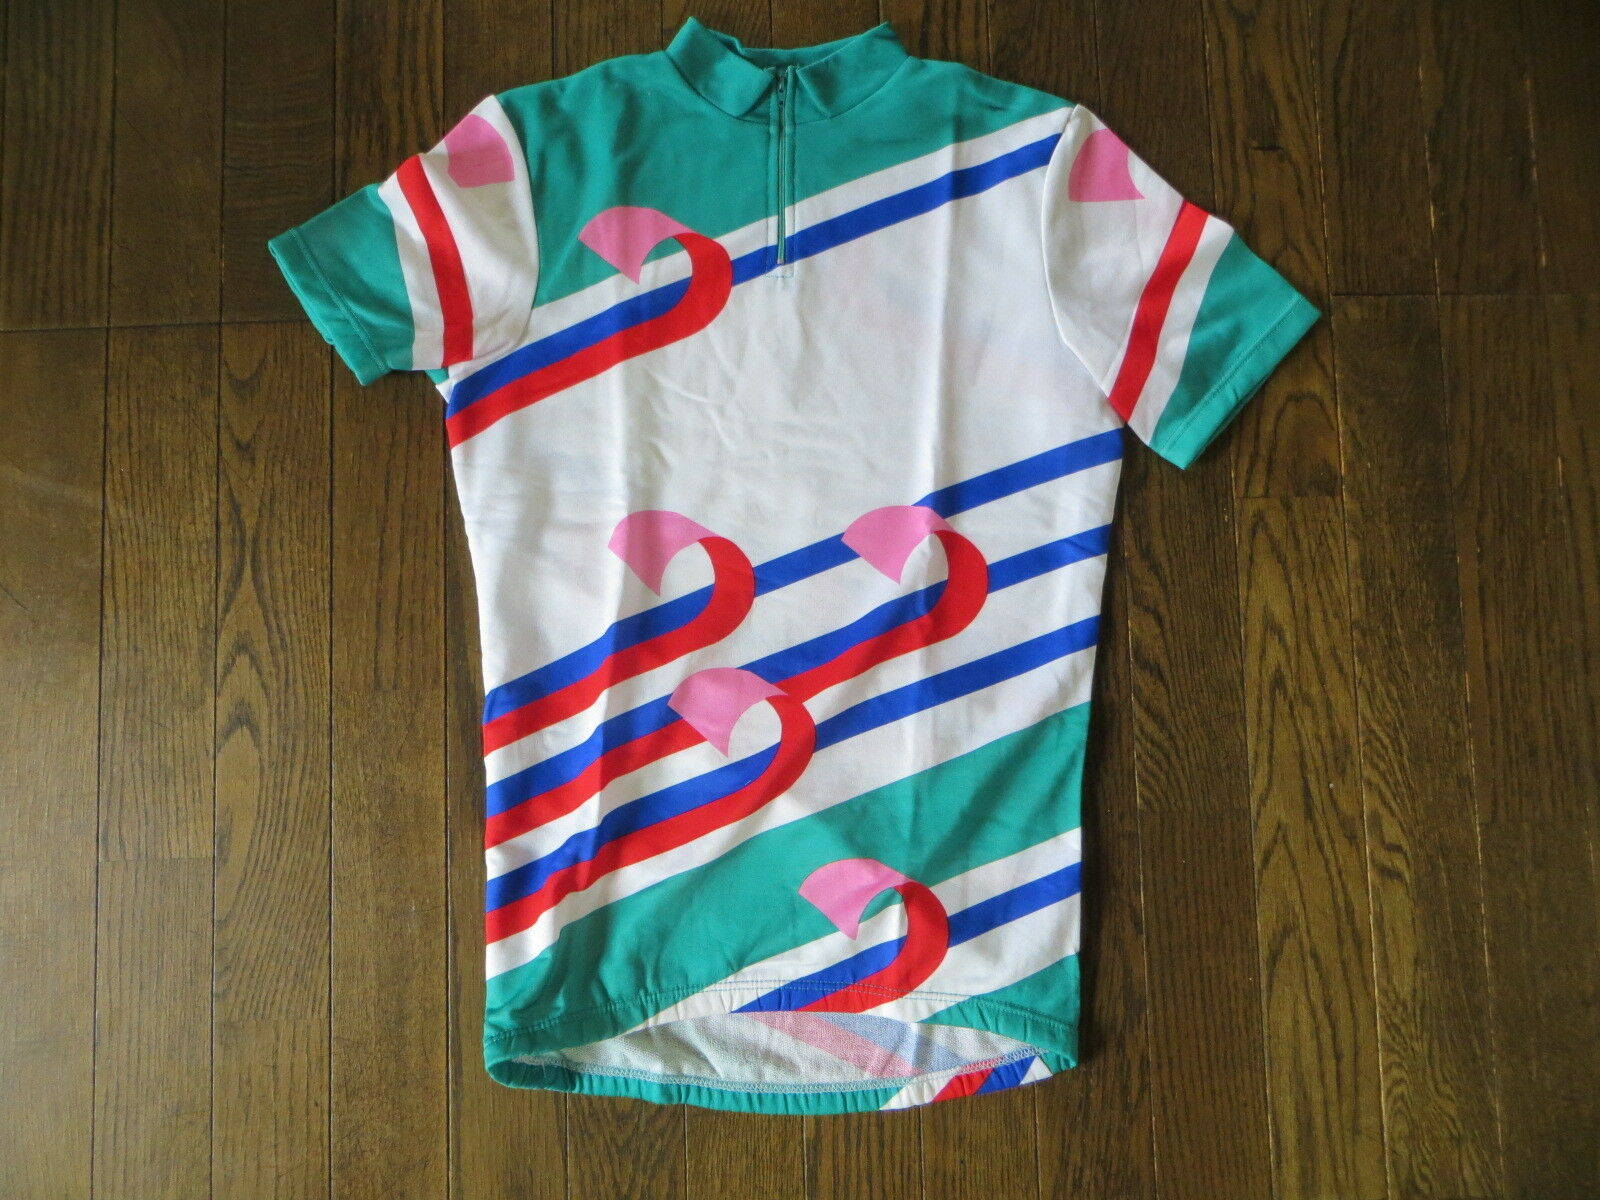 Never Used Vintage SMS Santini Bicycle Wear Cycling Jerjey XL (17051001)